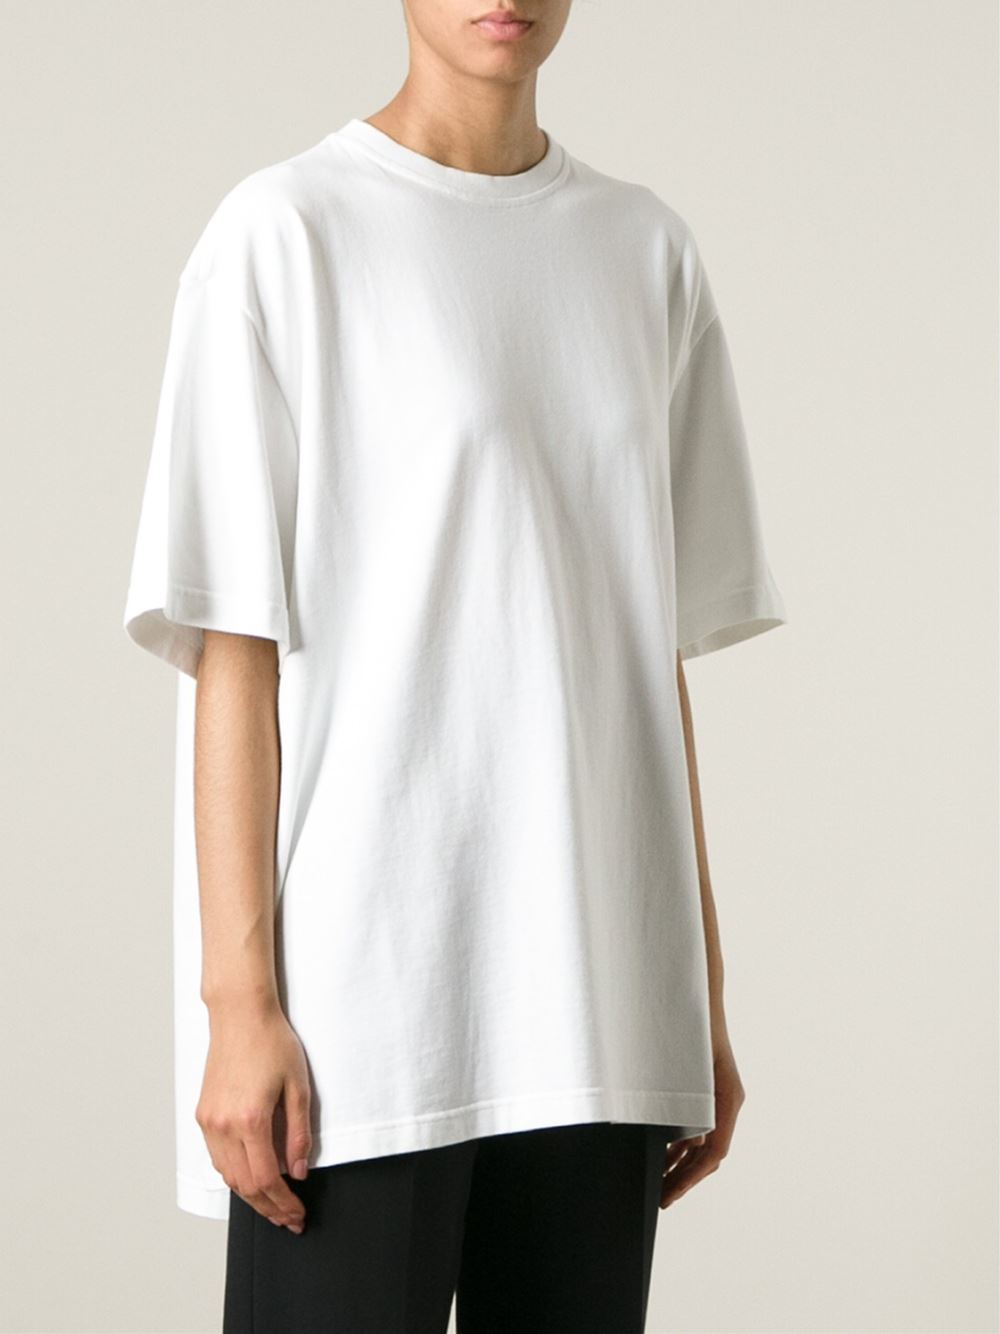 lyst vetements back print oversized t shirt in white. Black Bedroom Furniture Sets. Home Design Ideas